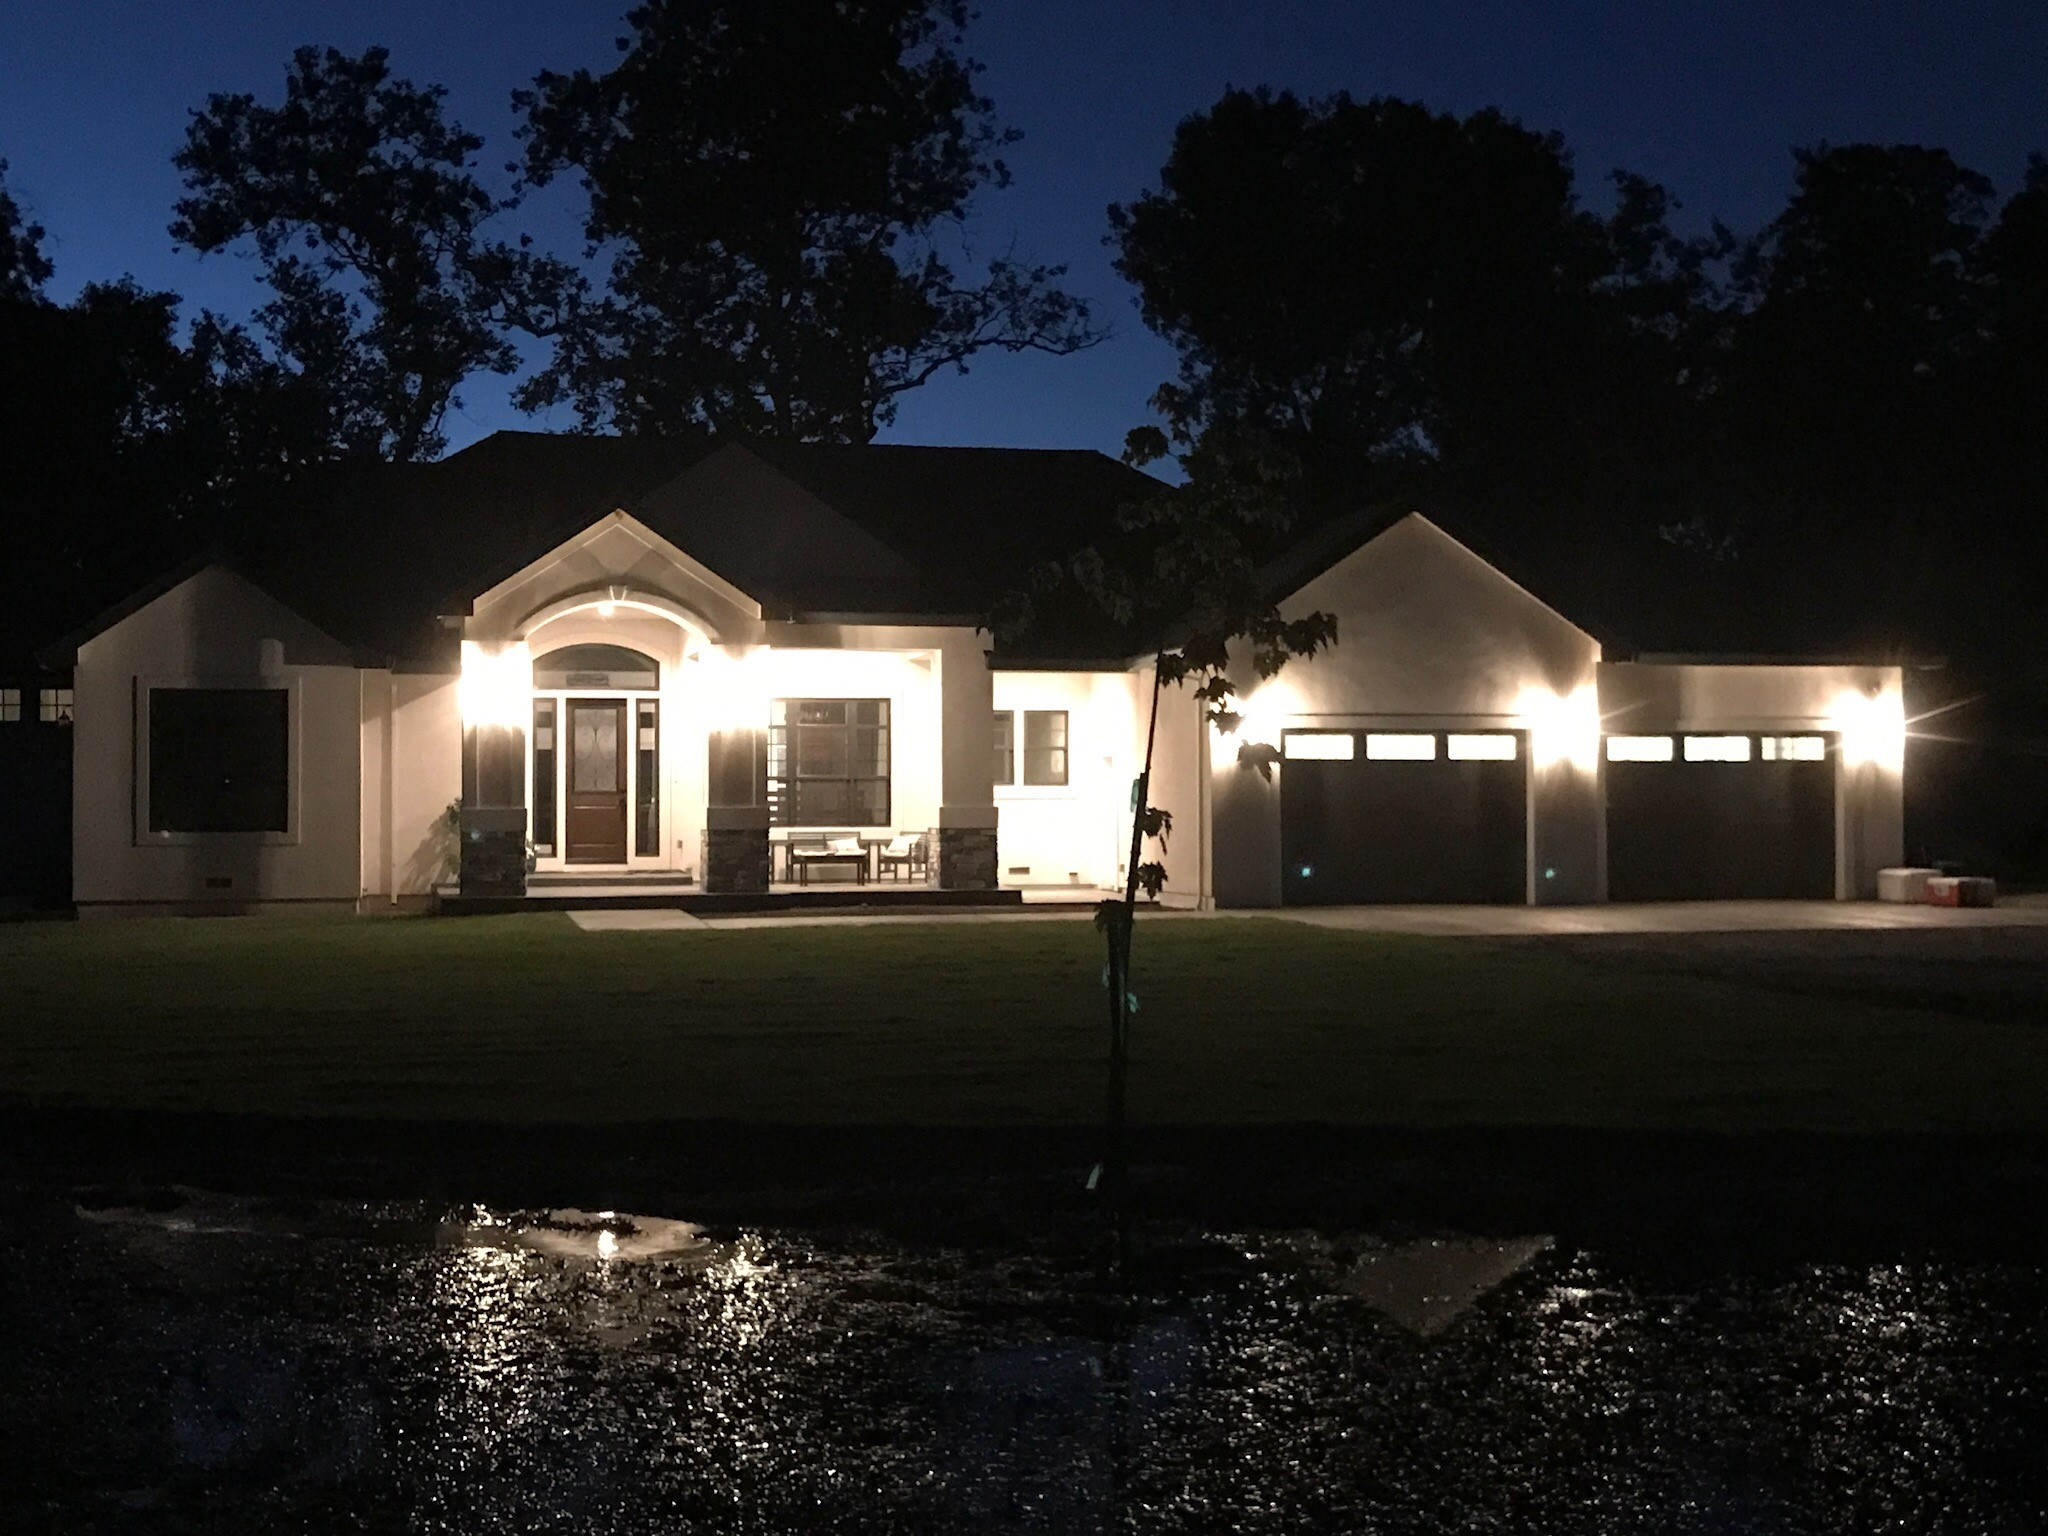 Evening view showing a completed dream home